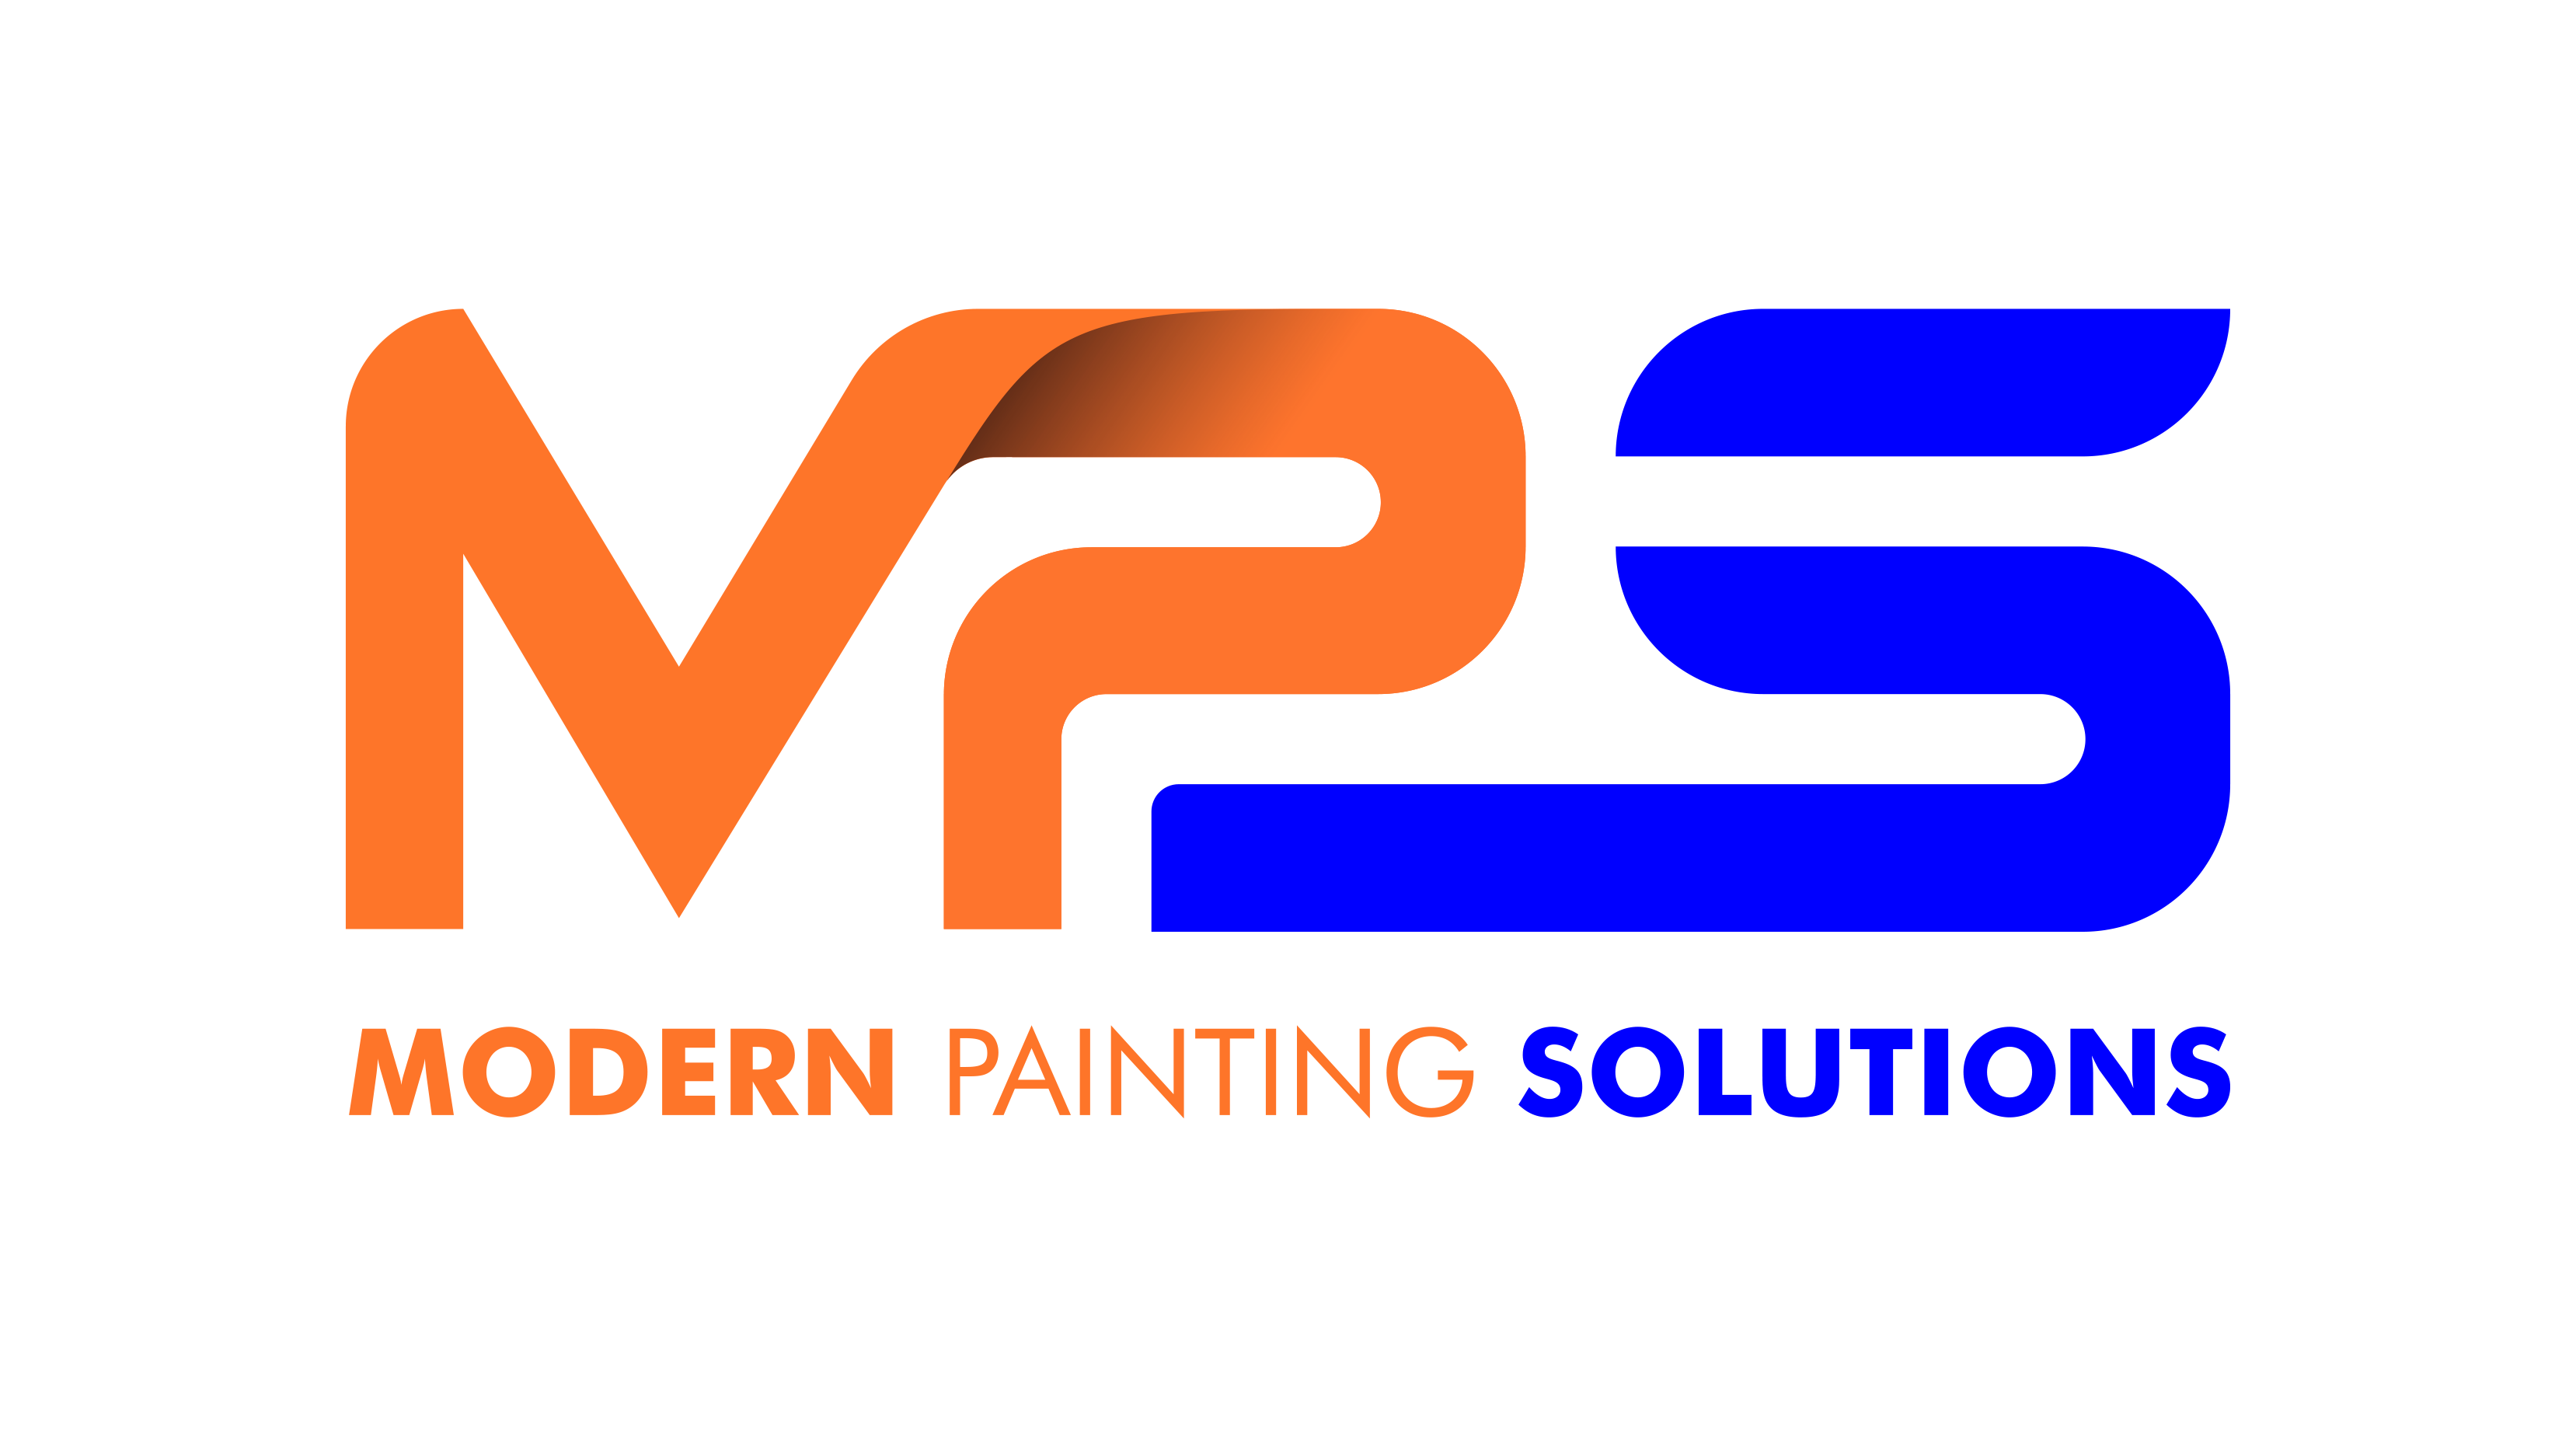 MODERN PAINTING SOLUTIONS  - LOGO.png